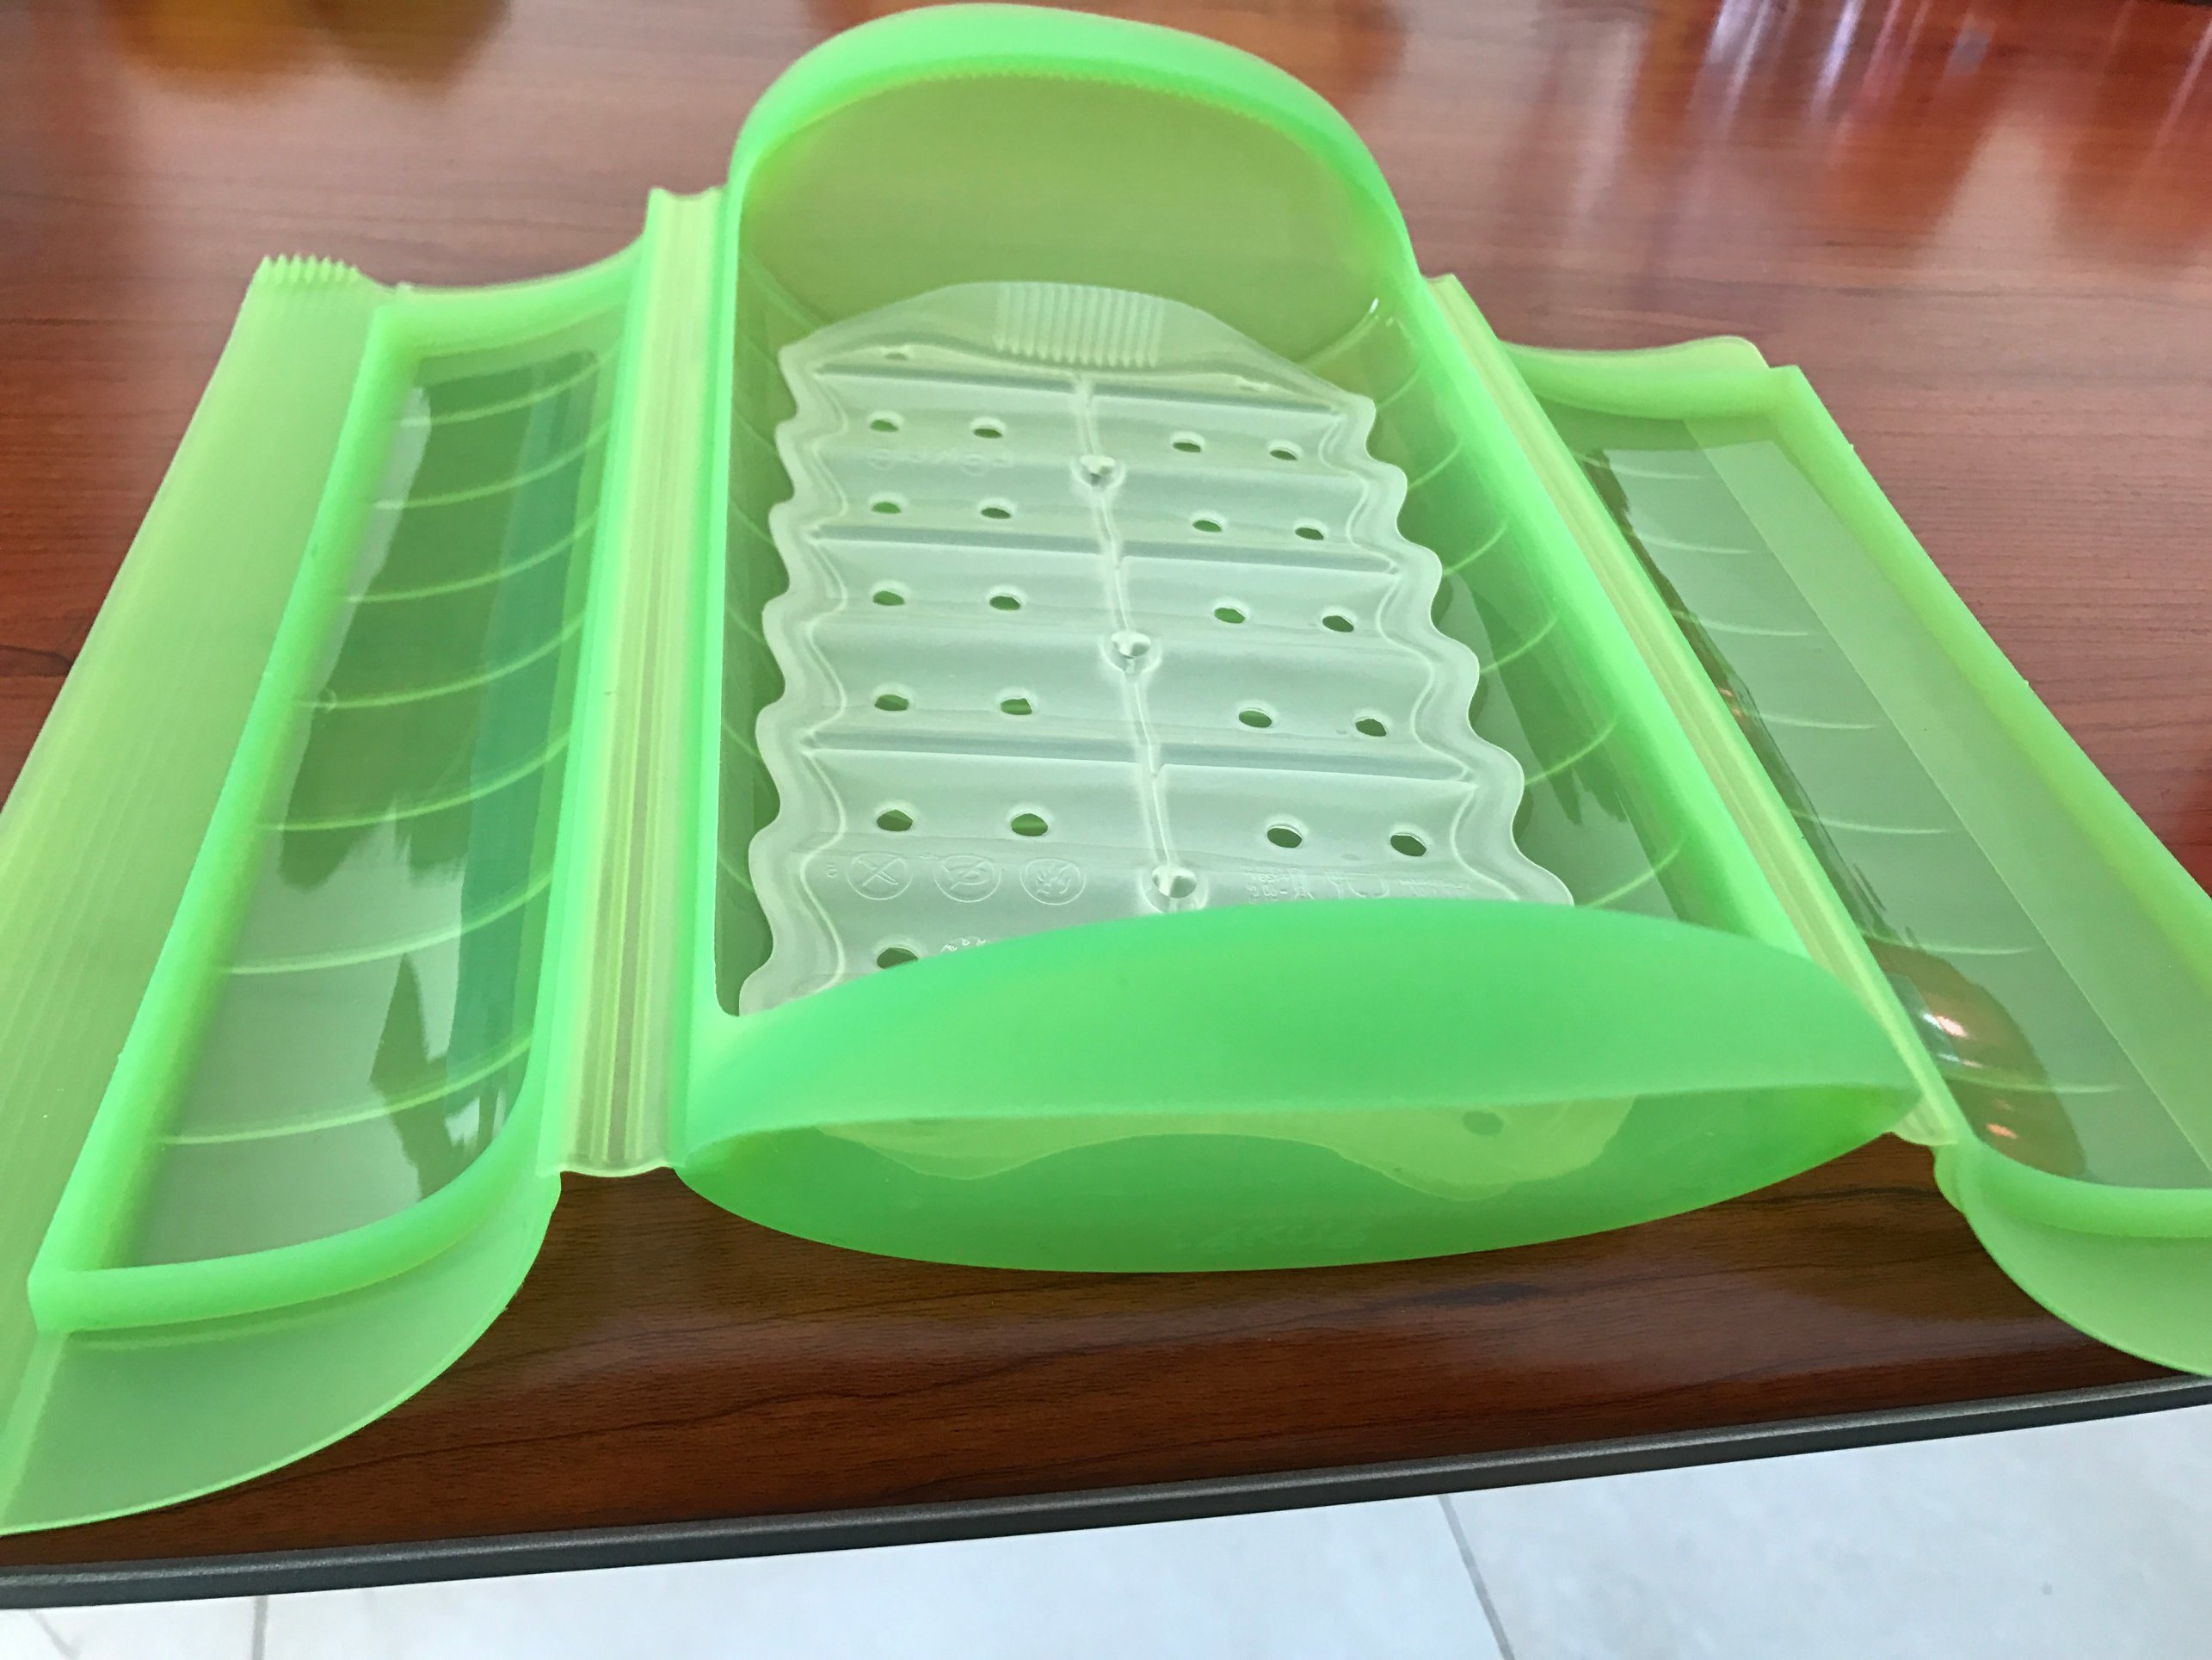 Plastic Silicone Steam Case/Box/Container for Microwave Usage